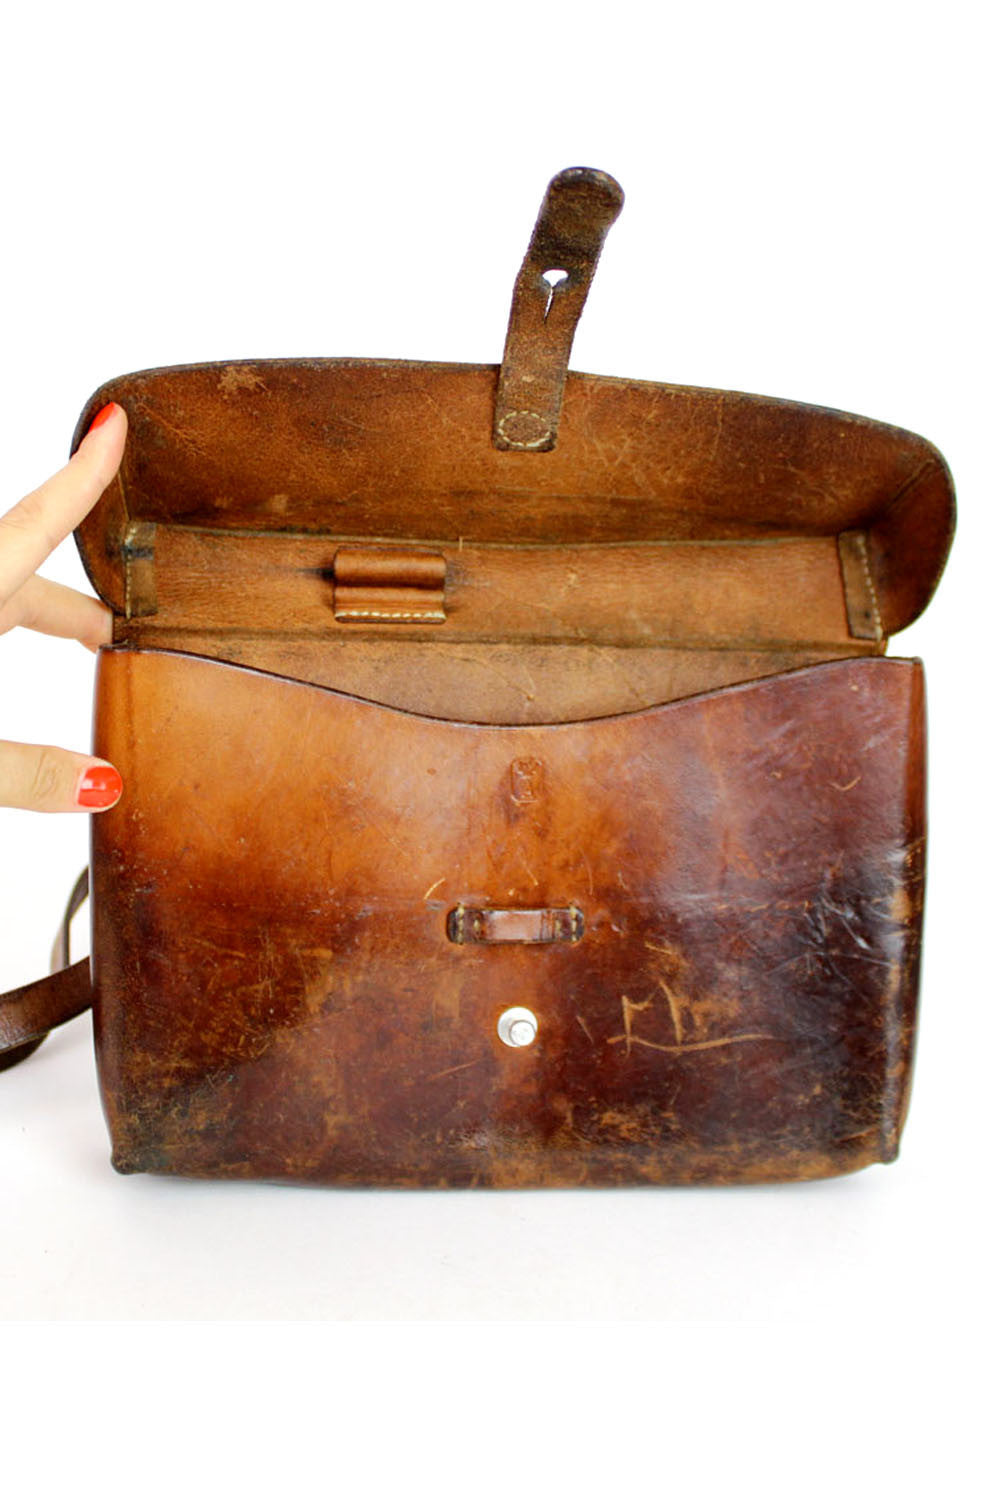 Swiss conductor satchel